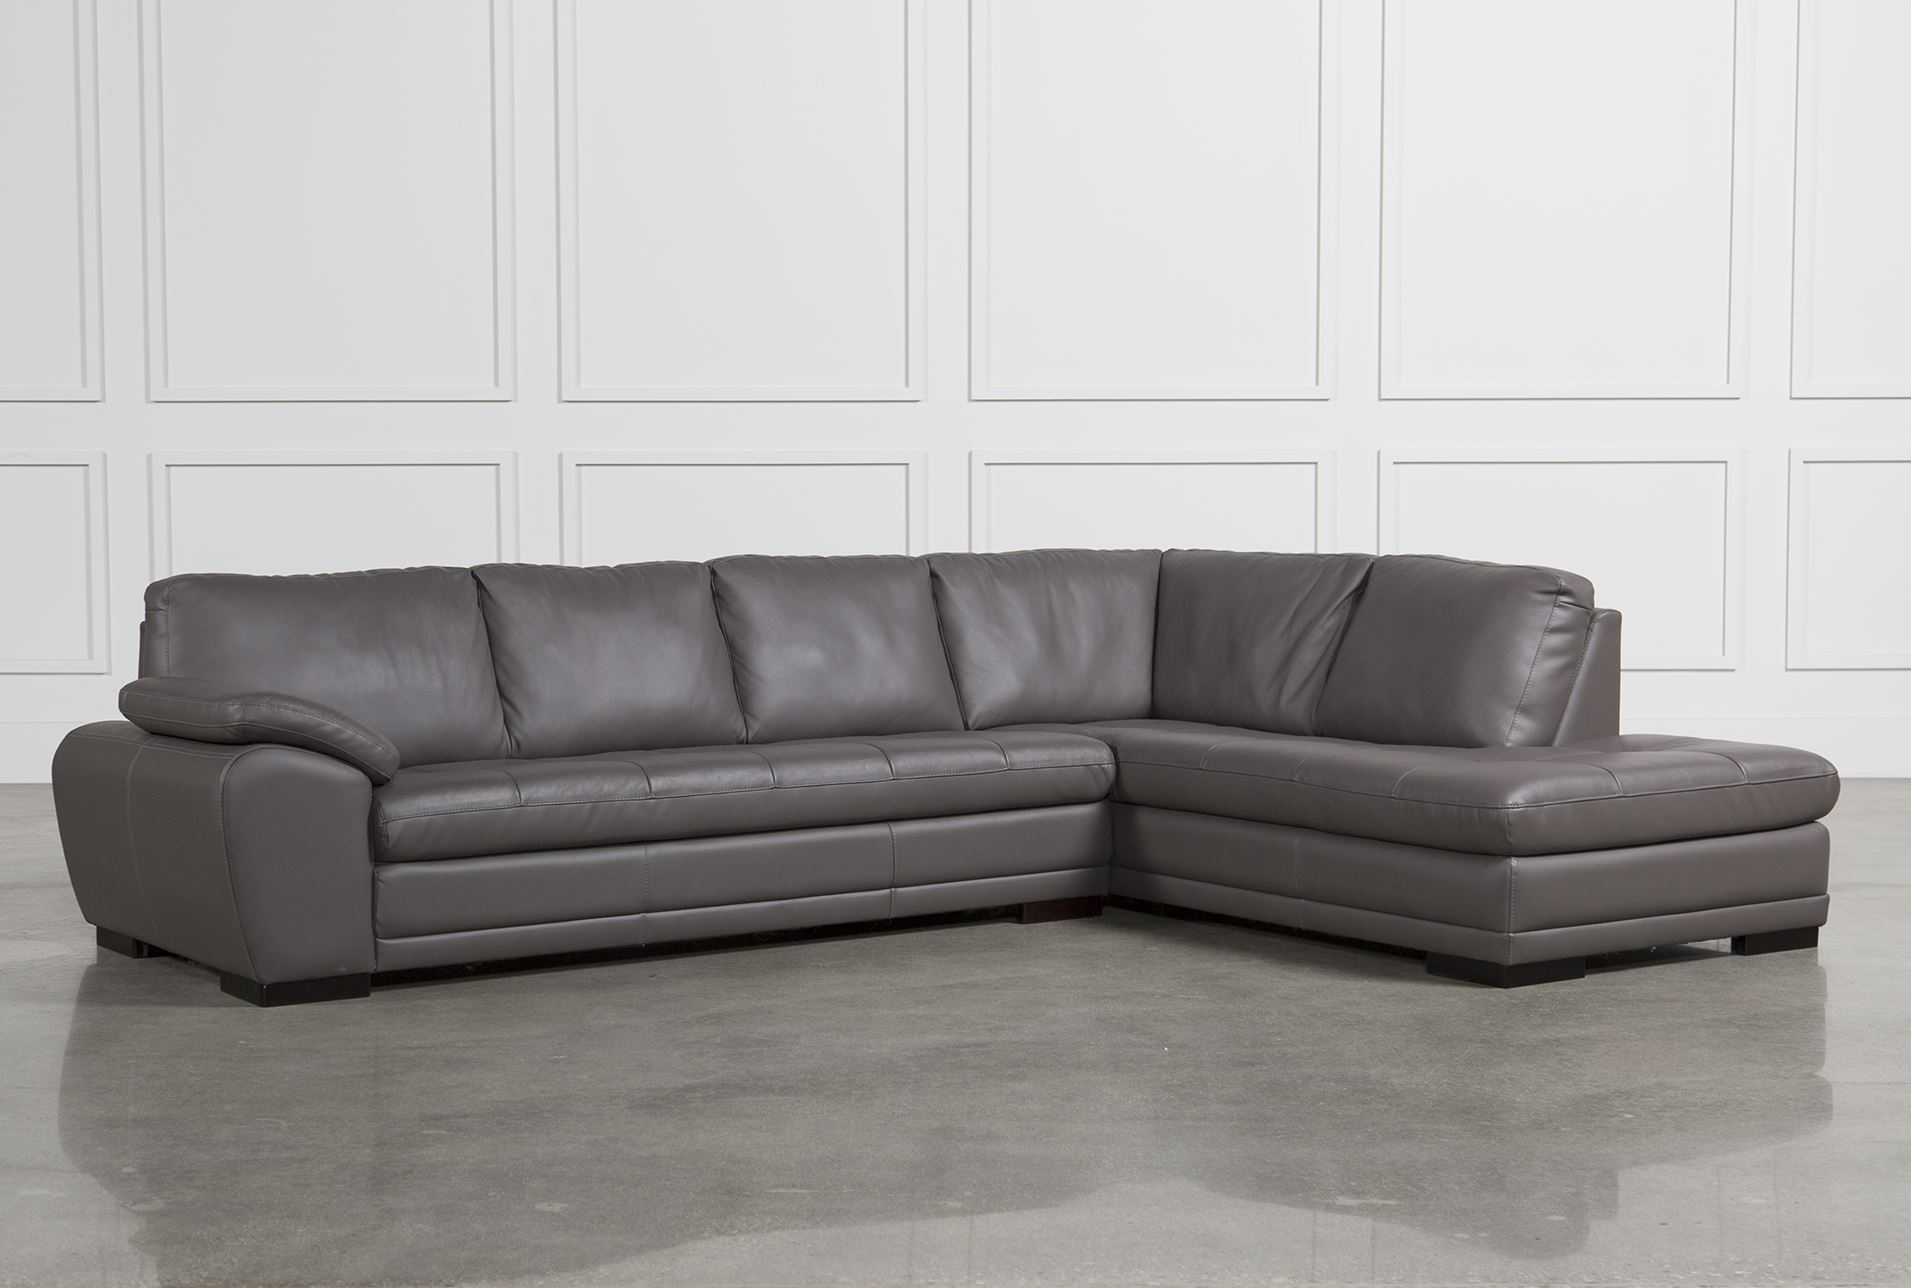 Probably Terrific Amazing Living Spaces Sectional Couches Ideas regarding Norfolk Chocolate 3 Piece Sectionals With Raf Chaise (Image 22 of 30)